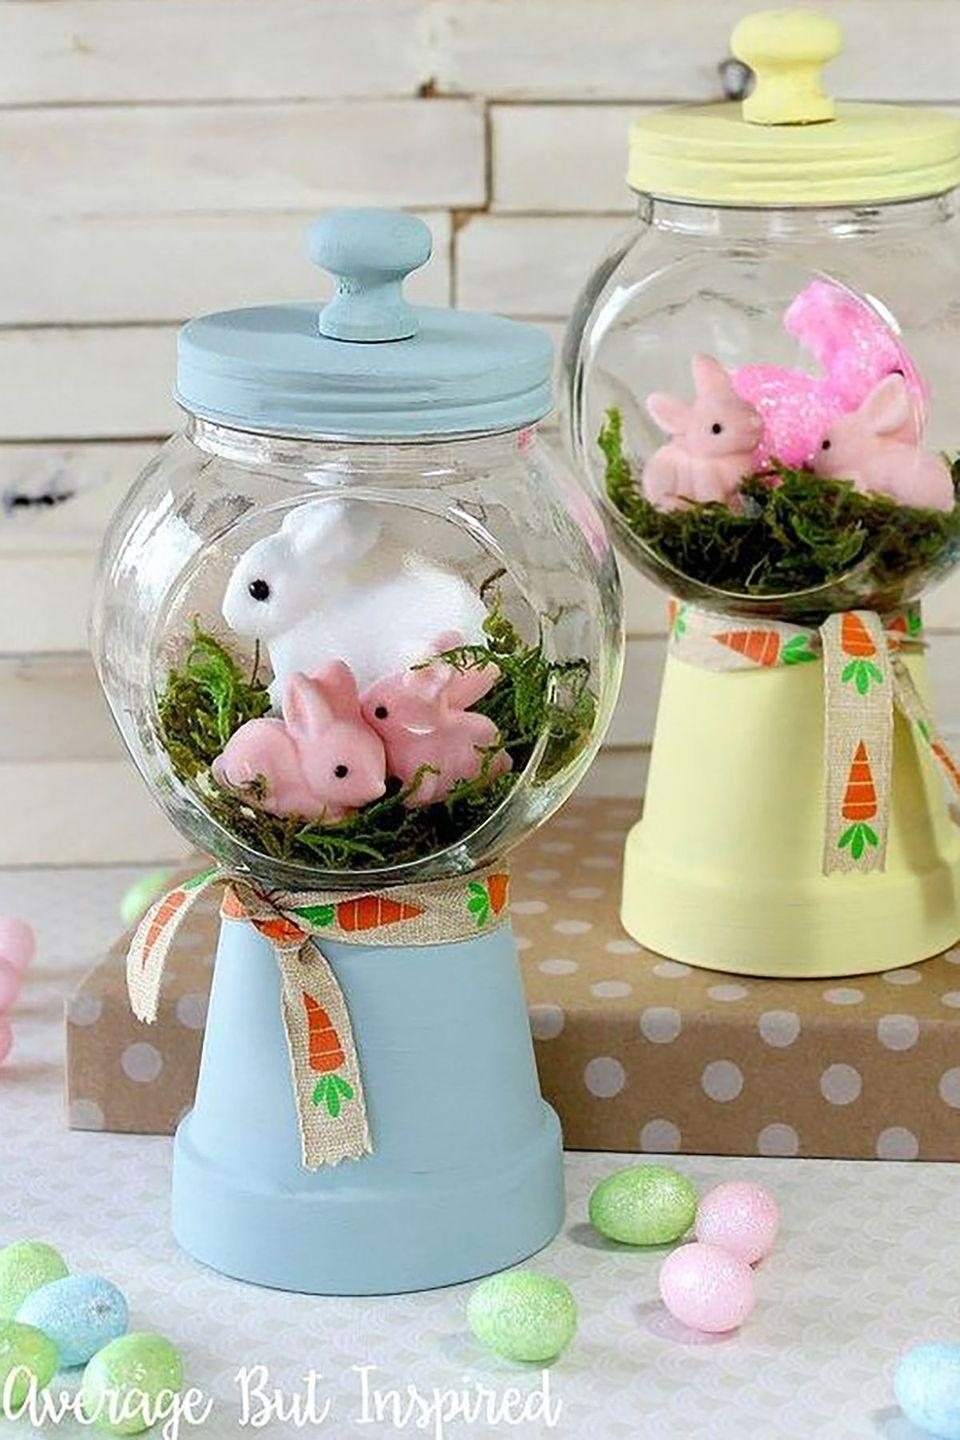 """<p>These faux gumball machines are made of overturned terra cotta pots and empty candy jars. Nestle a clump of artificial grass and a few plastic bunnies inside for a cute Easter vignette. </p><p><strong>Get the tutorial at <a href=""""http://www.averageinspired.com/2016/03/spring-bunny-gumball-machine-craft.html"""" rel=""""nofollow noopener"""" target=""""_blank"""" data-ylk=""""slk:Average But Inspired"""" class=""""link rapid-noclick-resp"""">Average But Inspired</a>.</strong></p><p><strong>What you'll need:</strong> <em>s</em><em>mall flower pots ($9, <a href=""""https://www.amazon.com/gp/product/B00M9SG6KO/?tag=syn-yahoo-20&ascsubtag=%5Bartid%7C10050.g.1111%5Bsrc%7Cyahoo-us"""" rel=""""nofollow noopener"""" target=""""_blank"""" data-ylk=""""slk:amazon.com"""" class=""""link rapid-noclick-resp"""">amazon.com</a>); small candy jars ($15, <a href=""""https://www.amazon.com/mDesign-Kitchen-Storage-Cookies-Chocolate/dp/B01HN3HSO2?tag=syn-yahoo-20&ascsubtag=%5Bartid%7C10050.g.1111%5Bsrc%7Cyahoo-us"""" rel=""""nofollow noopener"""" target=""""_blank"""" data-ylk=""""slk:amazon.com"""" class=""""link rapid-noclick-resp"""">amazon.com</a>); yellow chalky paint ($8, <a href=""""https://www.amazon.com/gp/product/B00HO036X2?tag=syn-yahoo-20&ascsubtag=%5Bartid%7C10050.g.1111%5Bsrc%7Cyahoo-us"""" rel=""""nofollow noopener"""" target=""""_blank"""" data-ylk=""""slk:amazon.com"""" class=""""link rapid-noclick-resp"""">amazon.com</a>); blue chalky paint ($8, <a href=""""https://www.amazon.com/gp/product/B00HO03E5M?tag=syn-yahoo-20&ascsubtag=%5Bartid%7C10050.g.1111%5Bsrc%7Cyahoo-us"""" rel=""""nofollow noopener"""" target=""""_blank"""" data-ylk=""""slk:amazon.com"""" class=""""link rapid-noclick-resp"""">amazon.com</a>)</em></p>"""